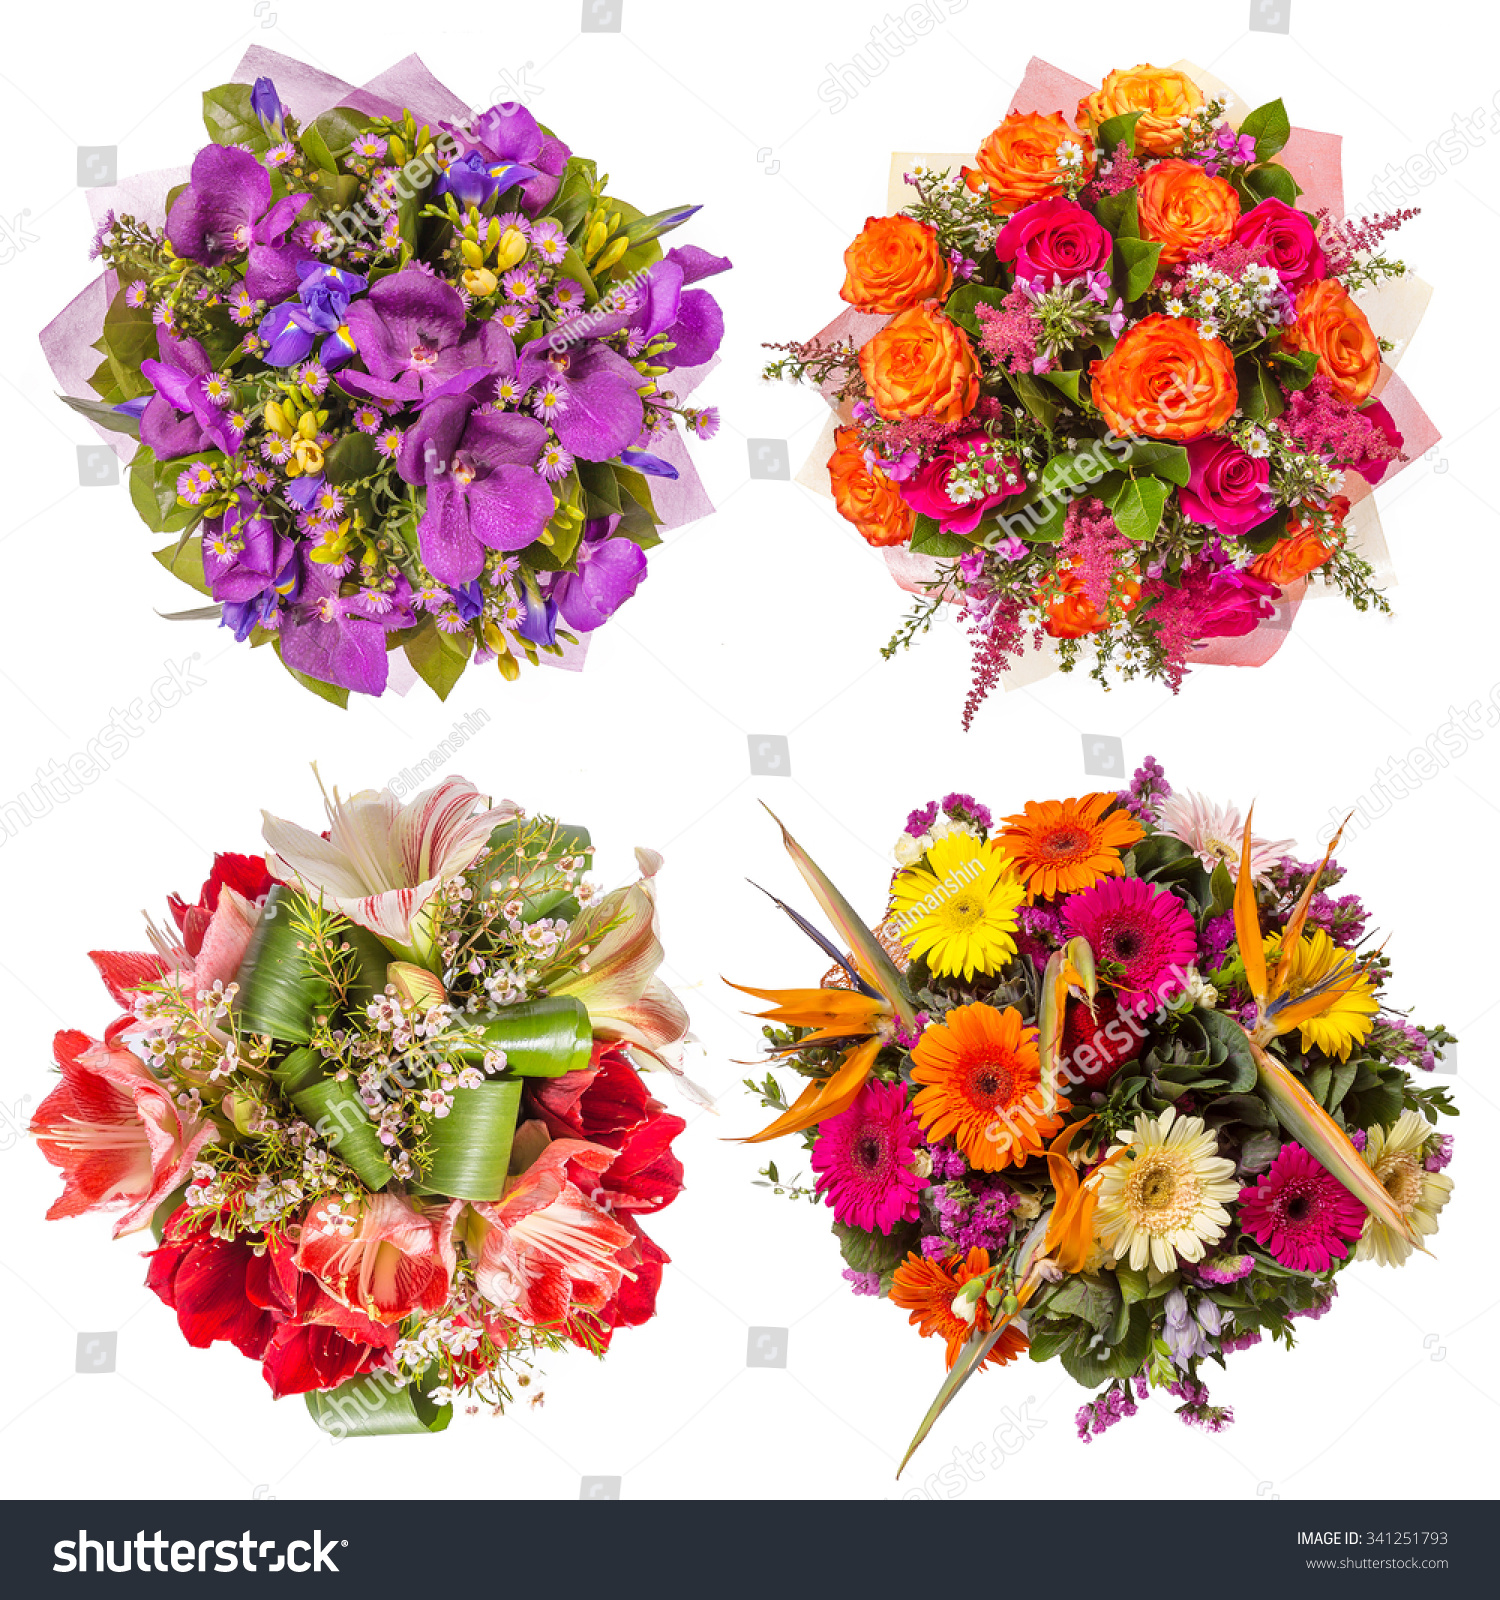 Top View Four Colorful Flower Bouquets Stock Photo (Royalty Free ...